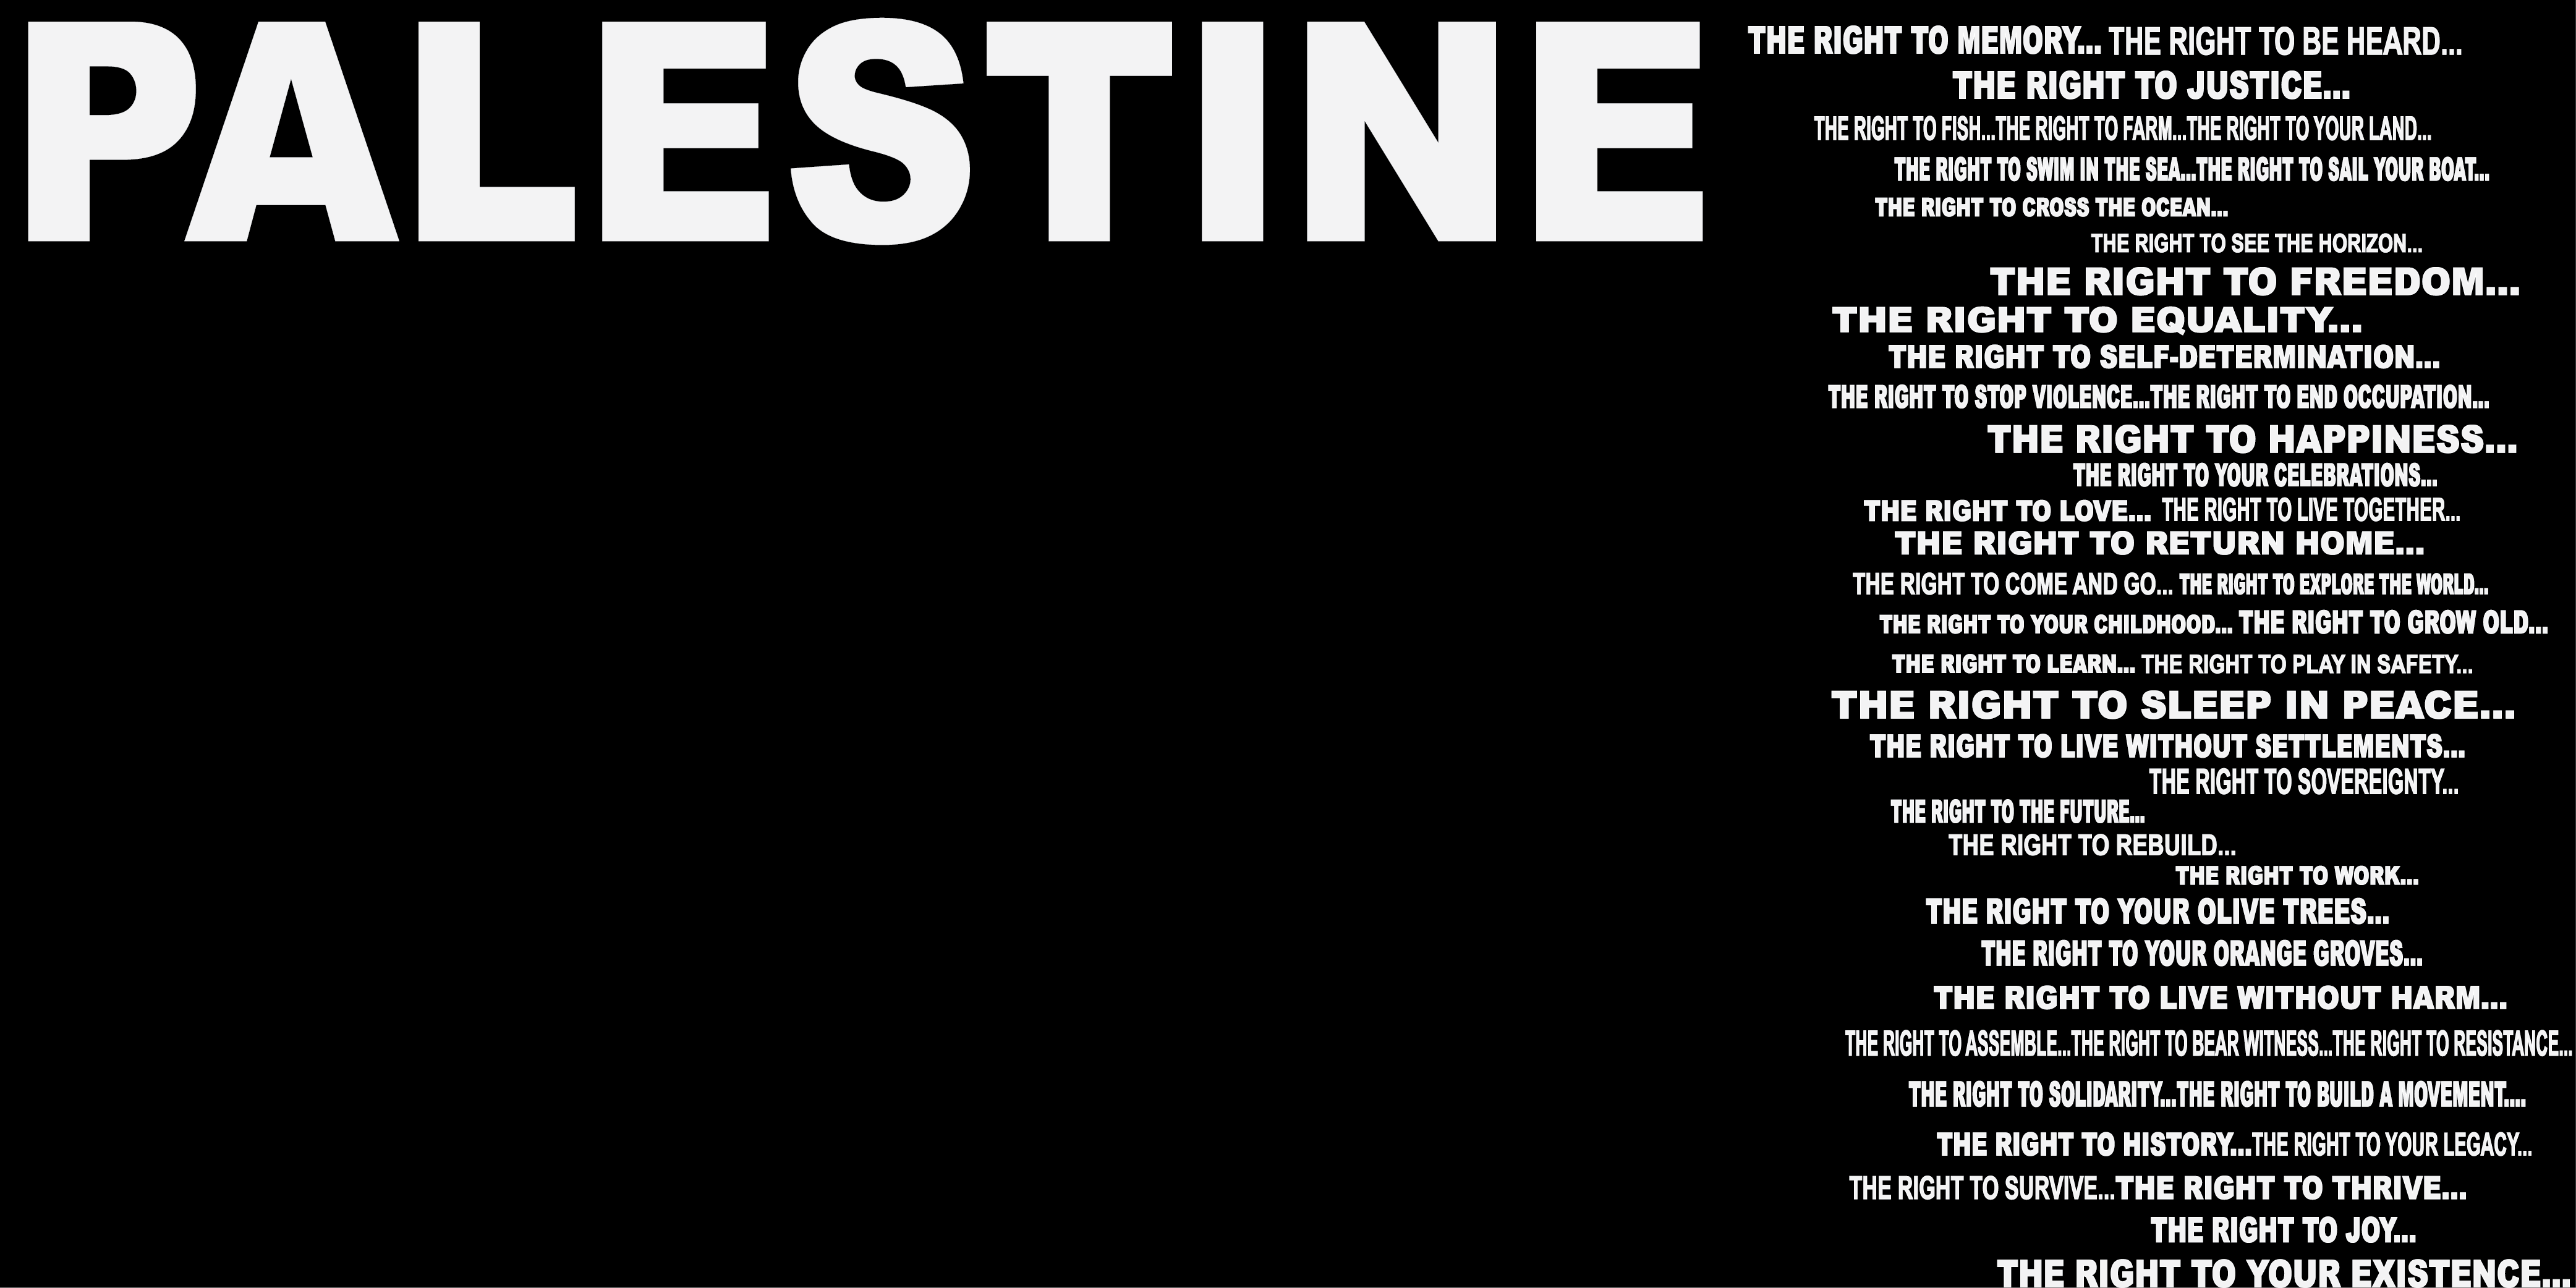 PALESTINE (RIGHTS ON BACK)